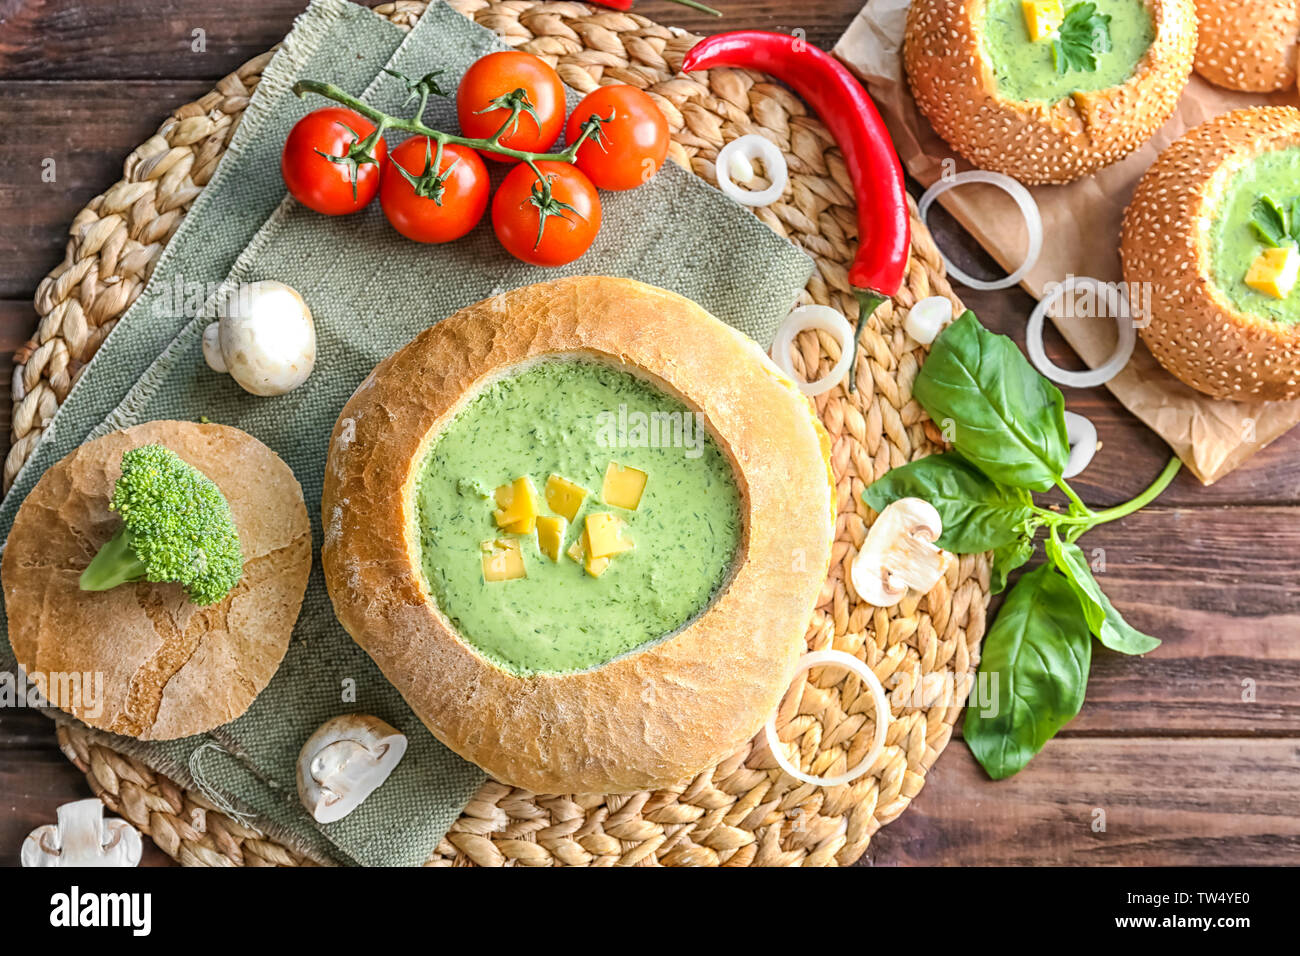 Broccoli soup with cheese in bread loaf on table - Stock Image